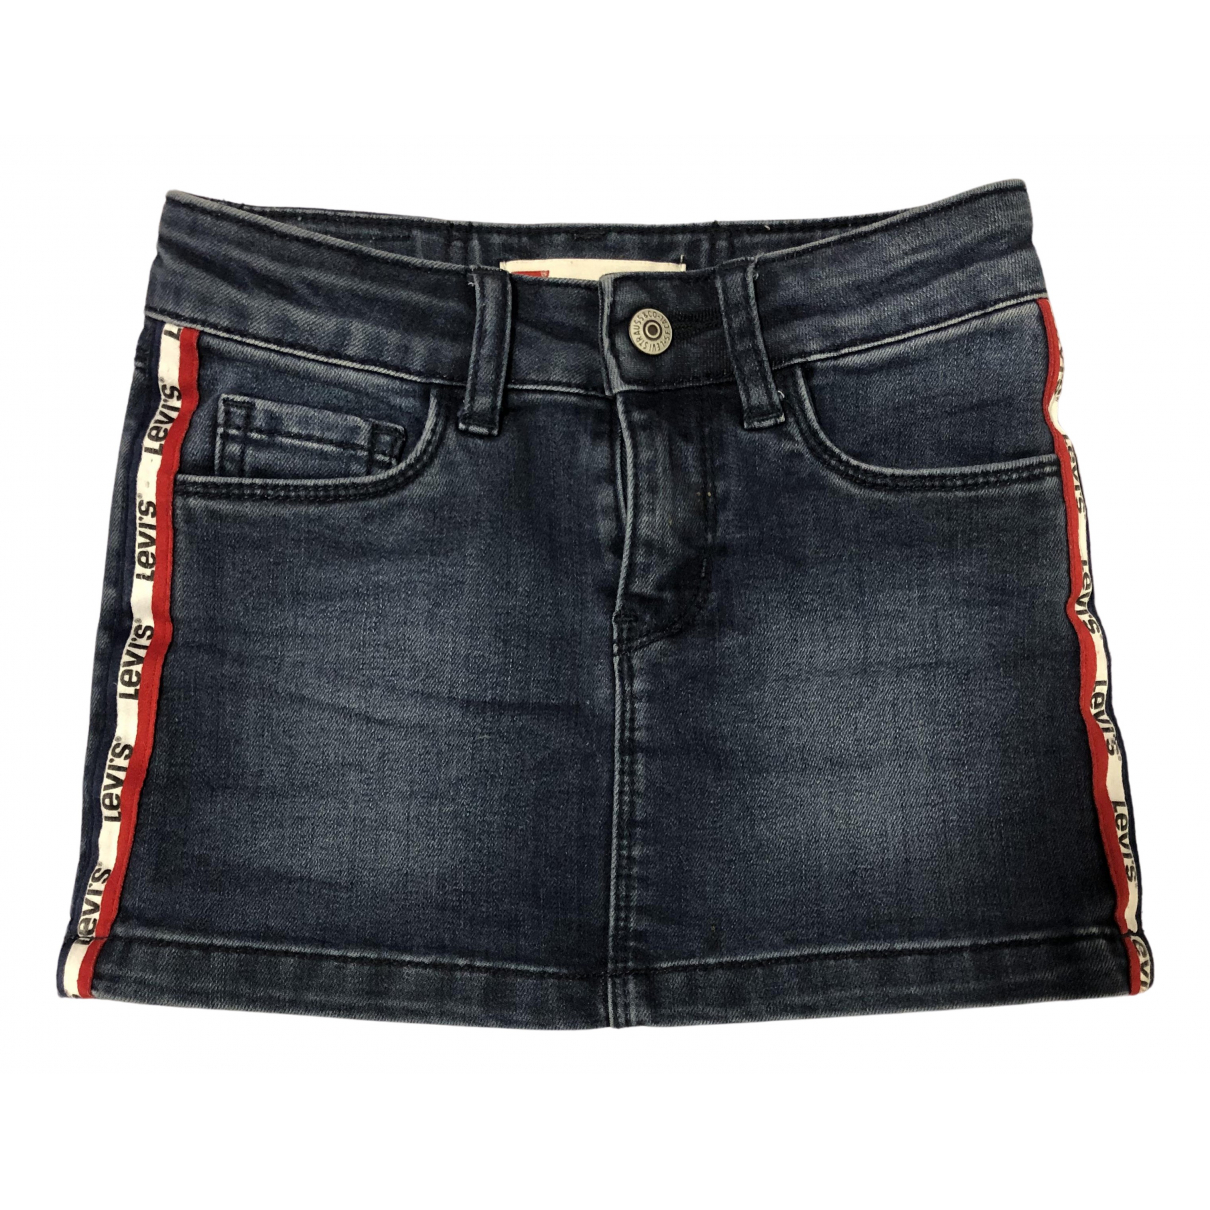 Levis N Navy Denim - Jeans skirt for Kids 6 years - until 45 inches UK